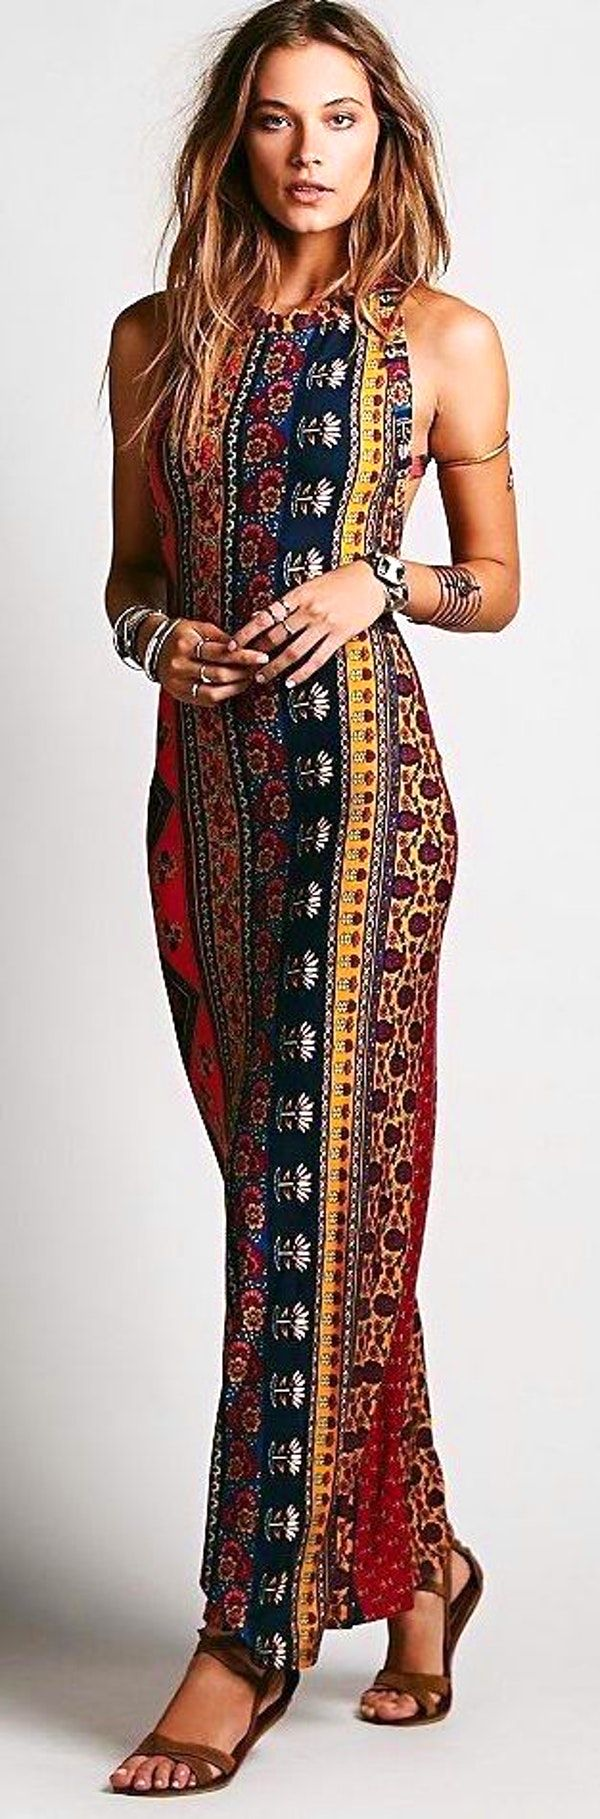 #boho #fashion #spring #outfitideas |70s, hippie-inspired colors and patterns make this comfy maxi dress really great